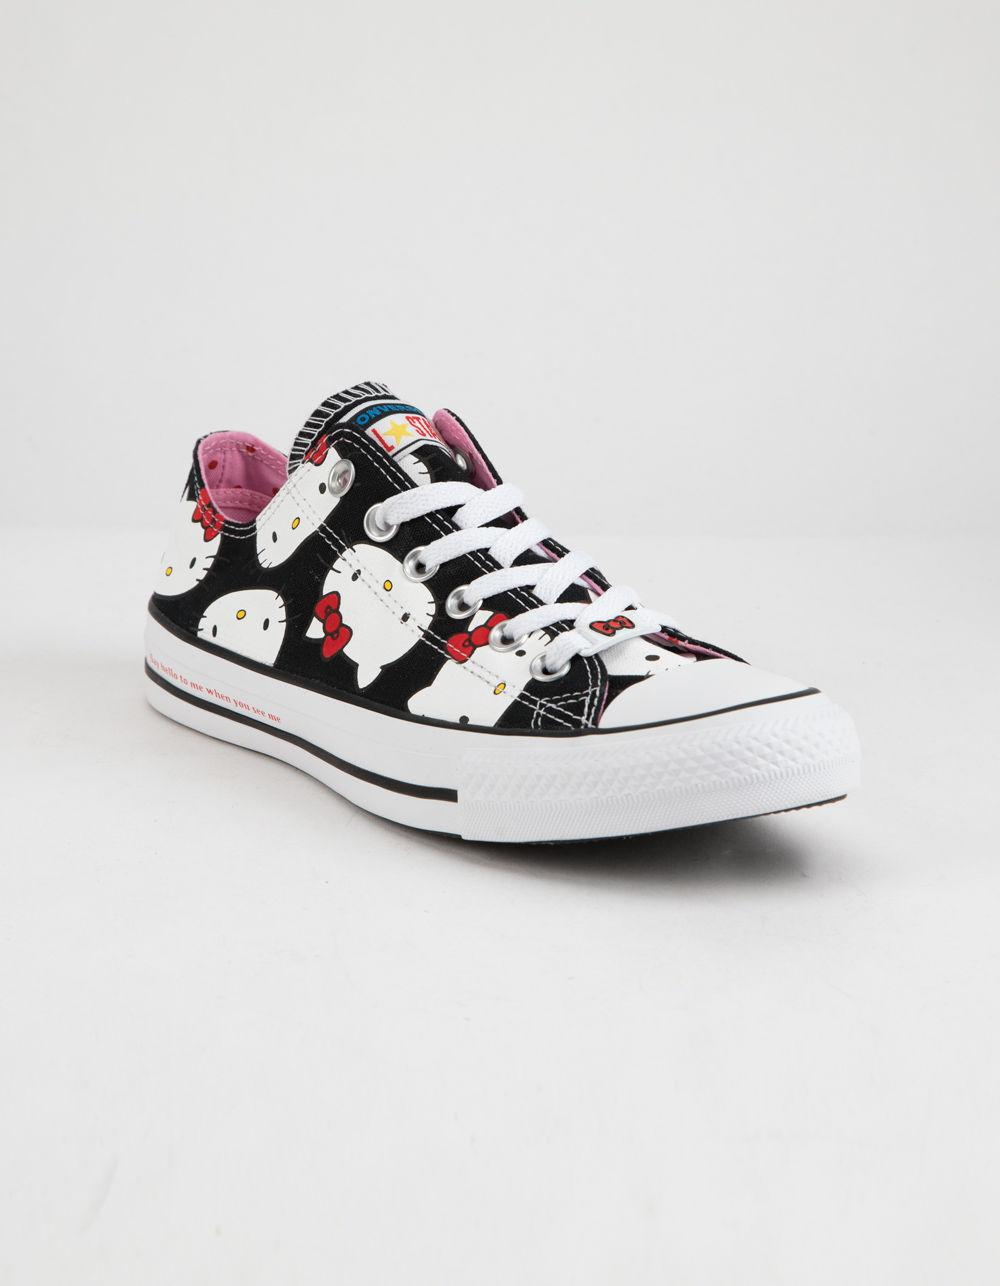 615129fc3475 Lyst - Converse X Hello Kitty Chuck Taylor All Star Black   Prism Pink Low  Top Womens Shoes in Black